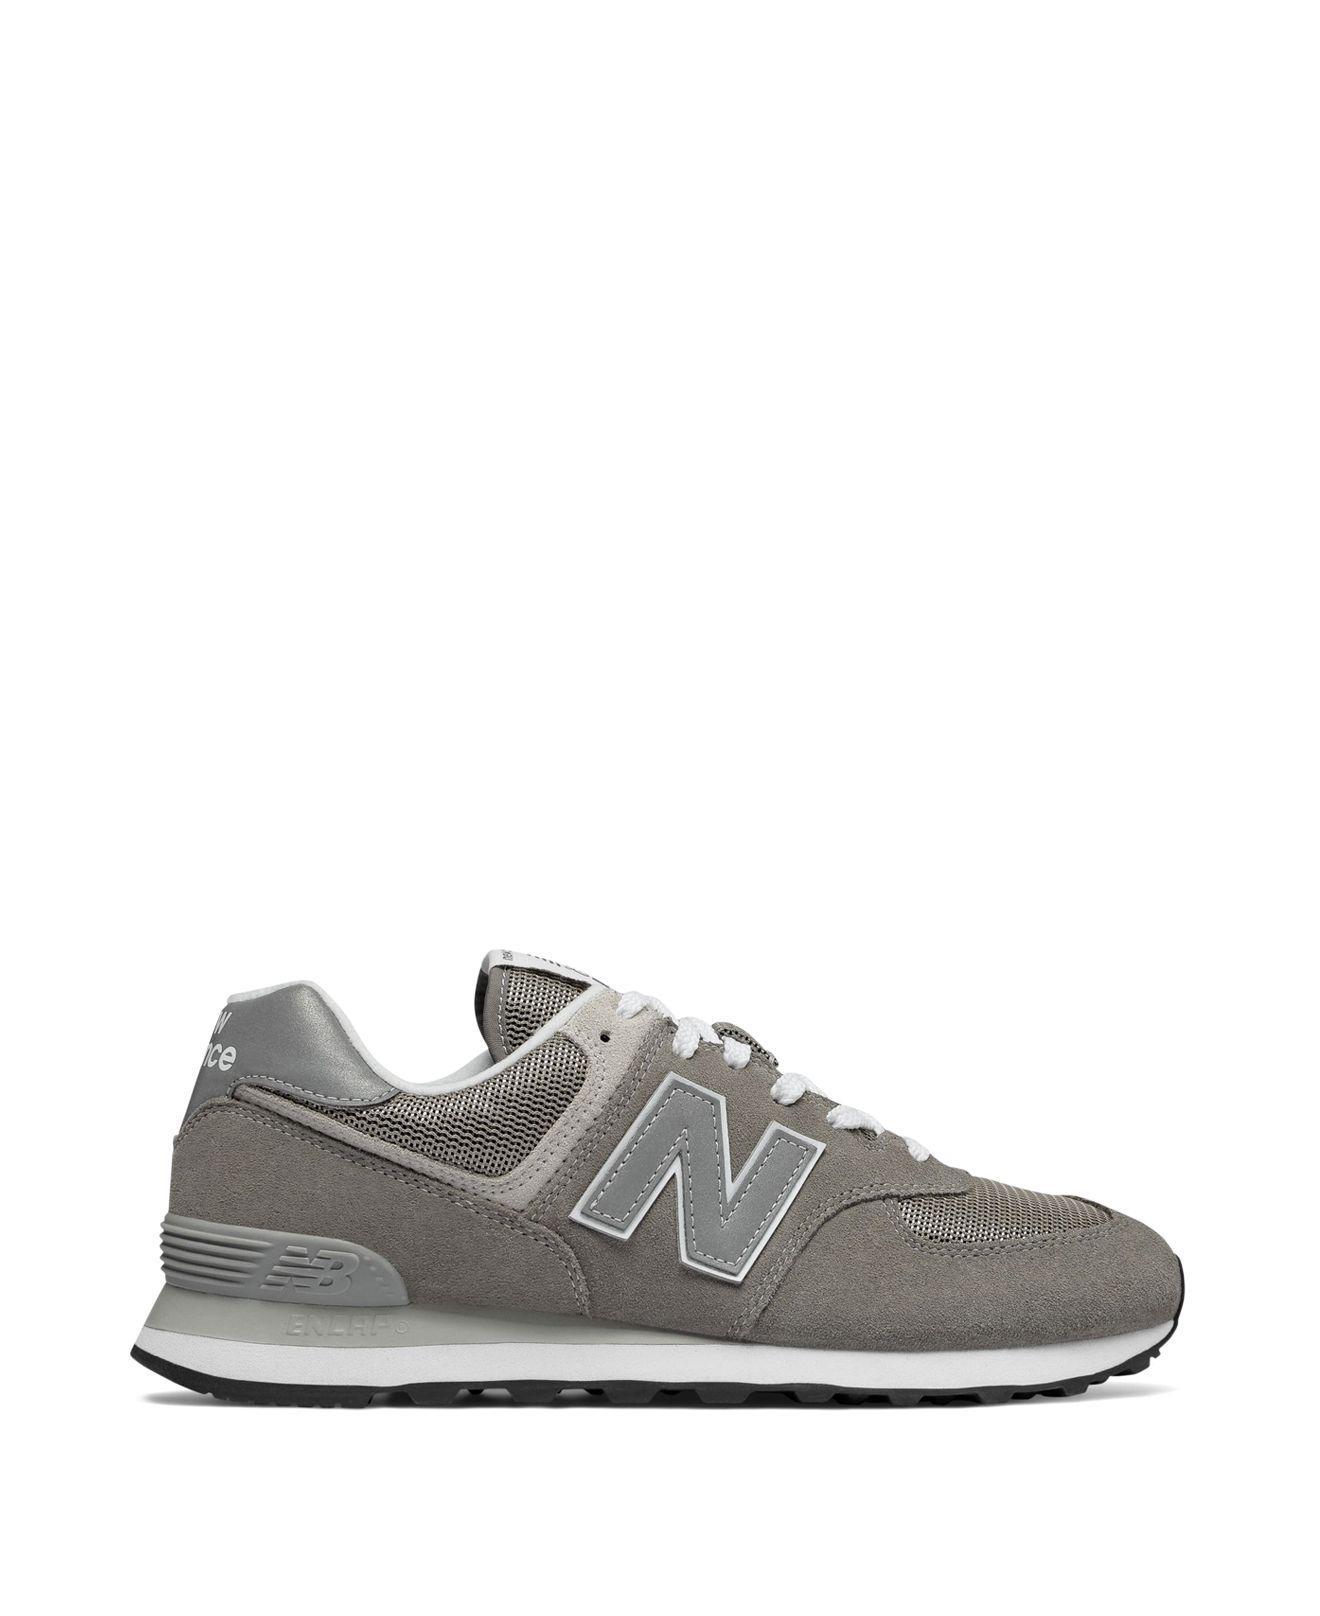 New Balance Men's 574 Classic Suede Lace Up Sneakers